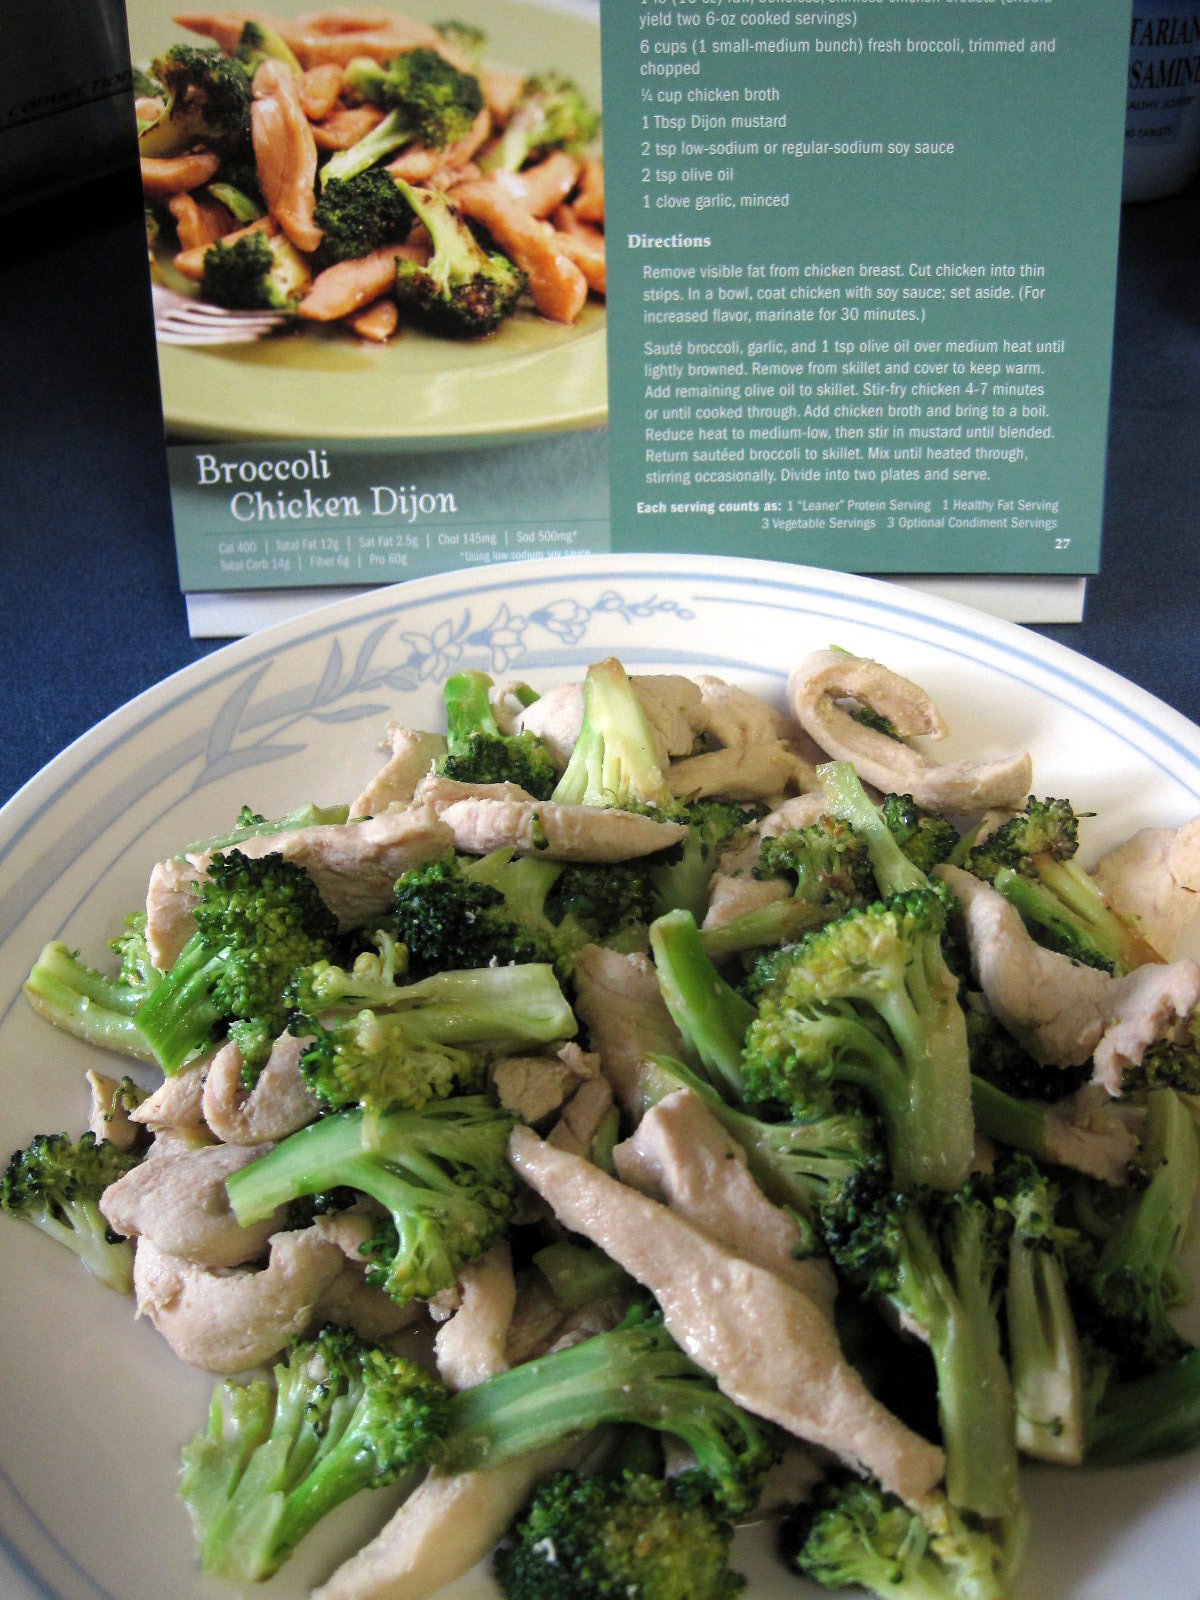 Escape From Obesity Reviews Medifast Lean Amp Green Meal Cookbook Review